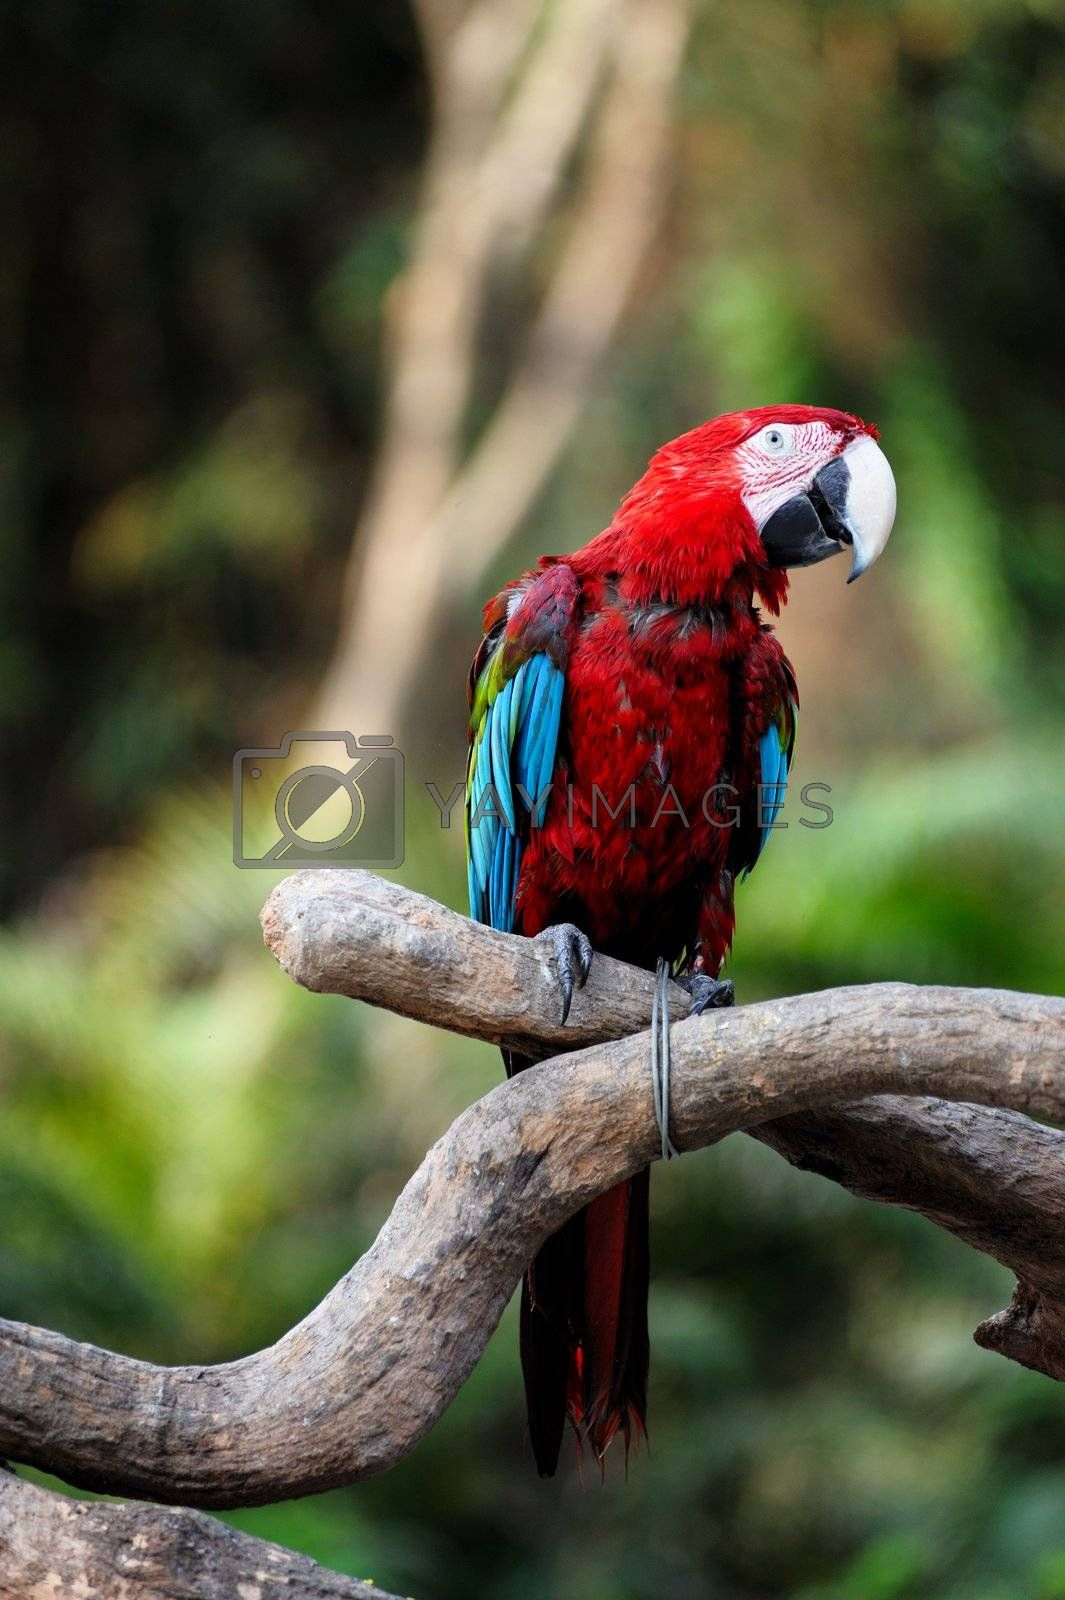 Parrot bird standing on the tree branch